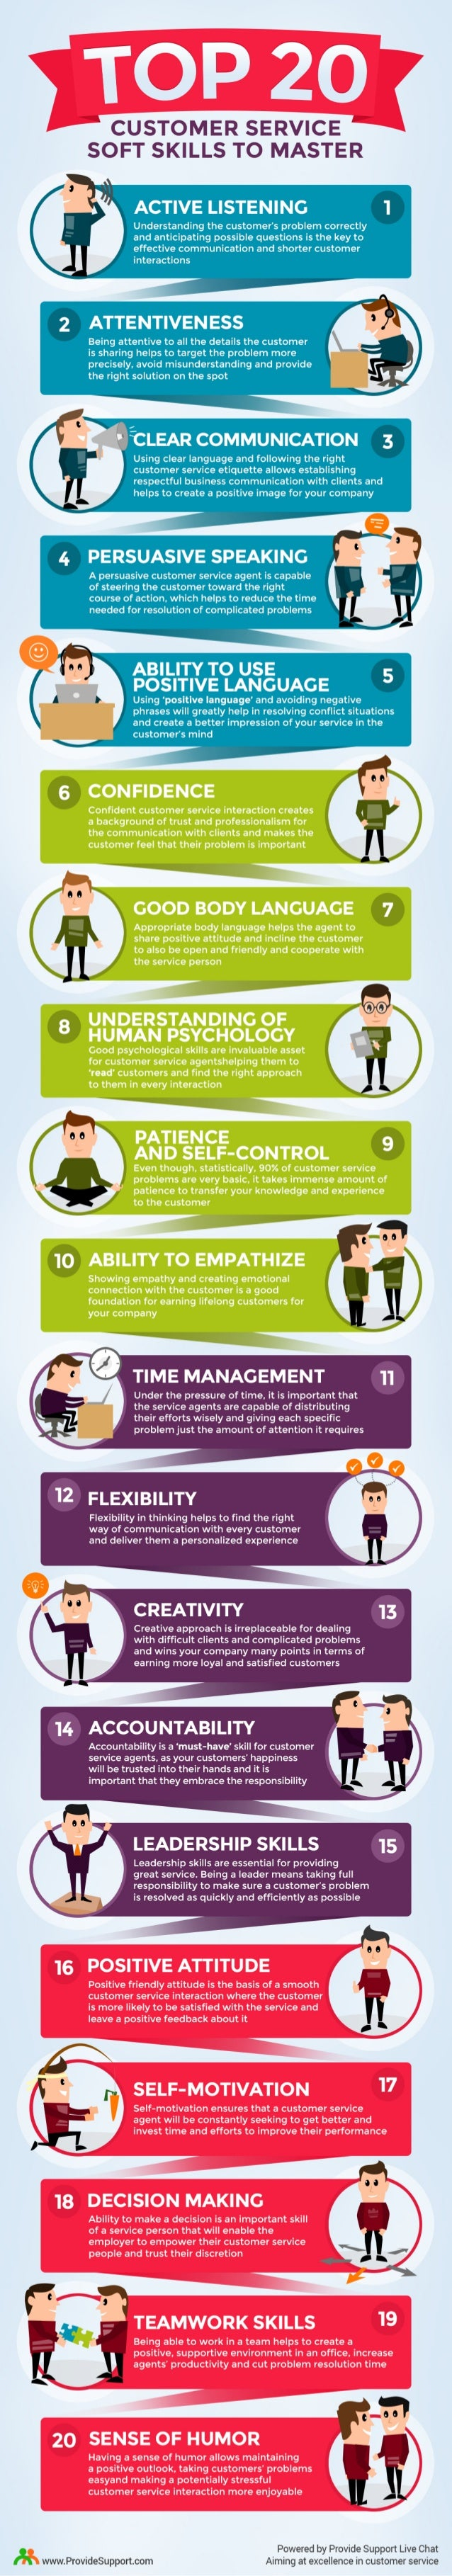 20 critical customer service skills all s reps should master check out this infographic from provide support to learn the 20 customer service skills